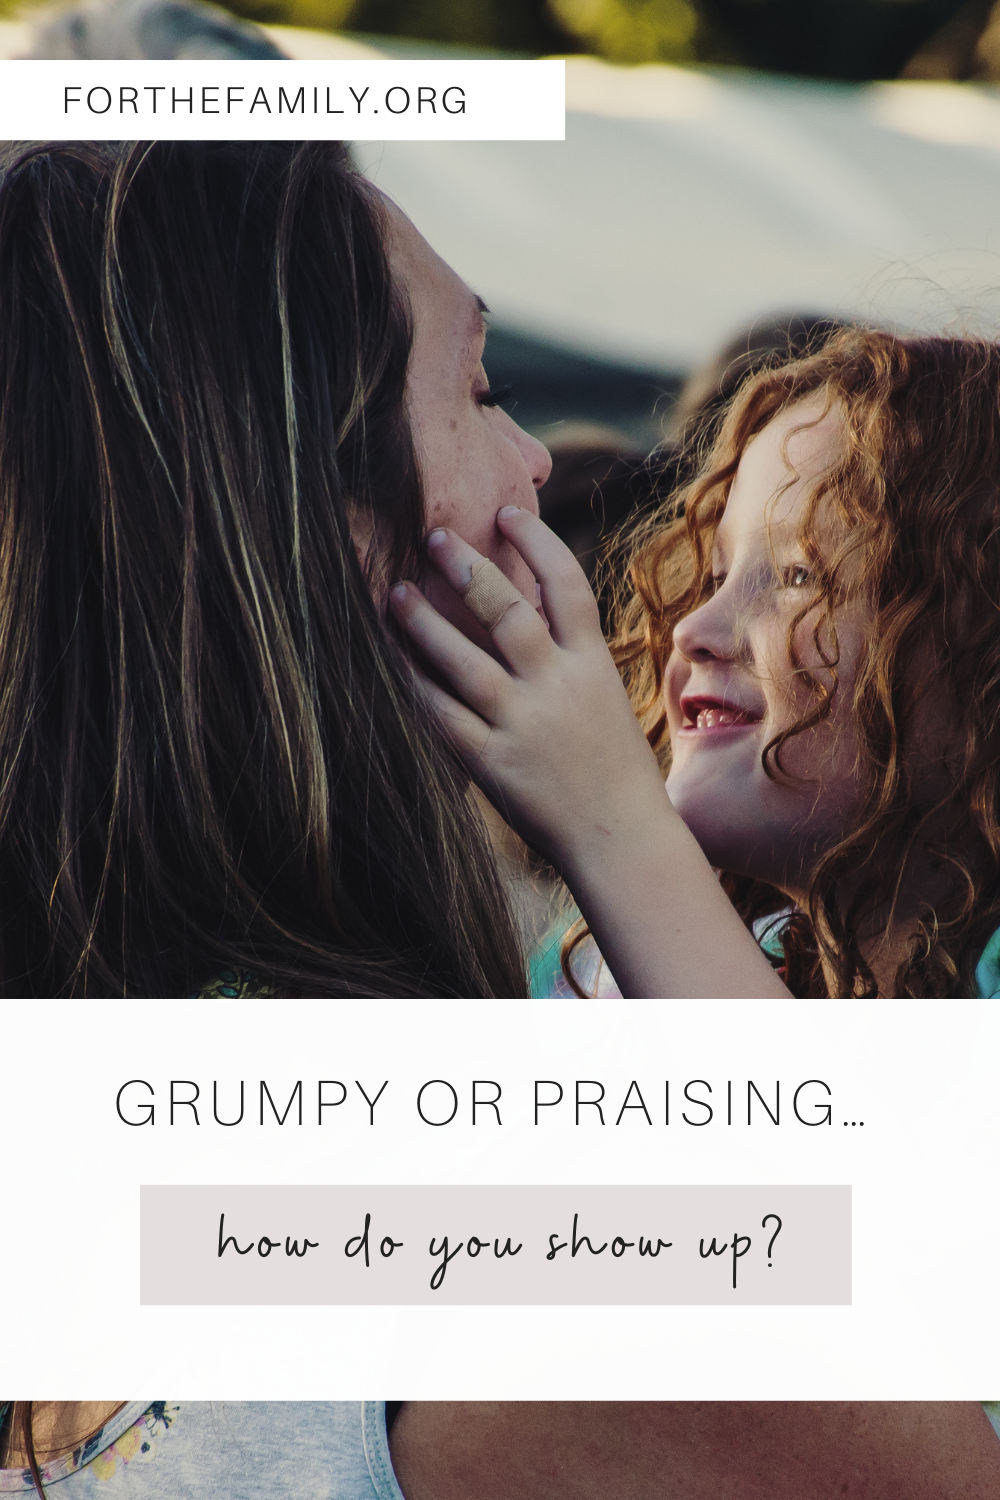 Grumpy or Praising… how do you show up? forthefamily.com